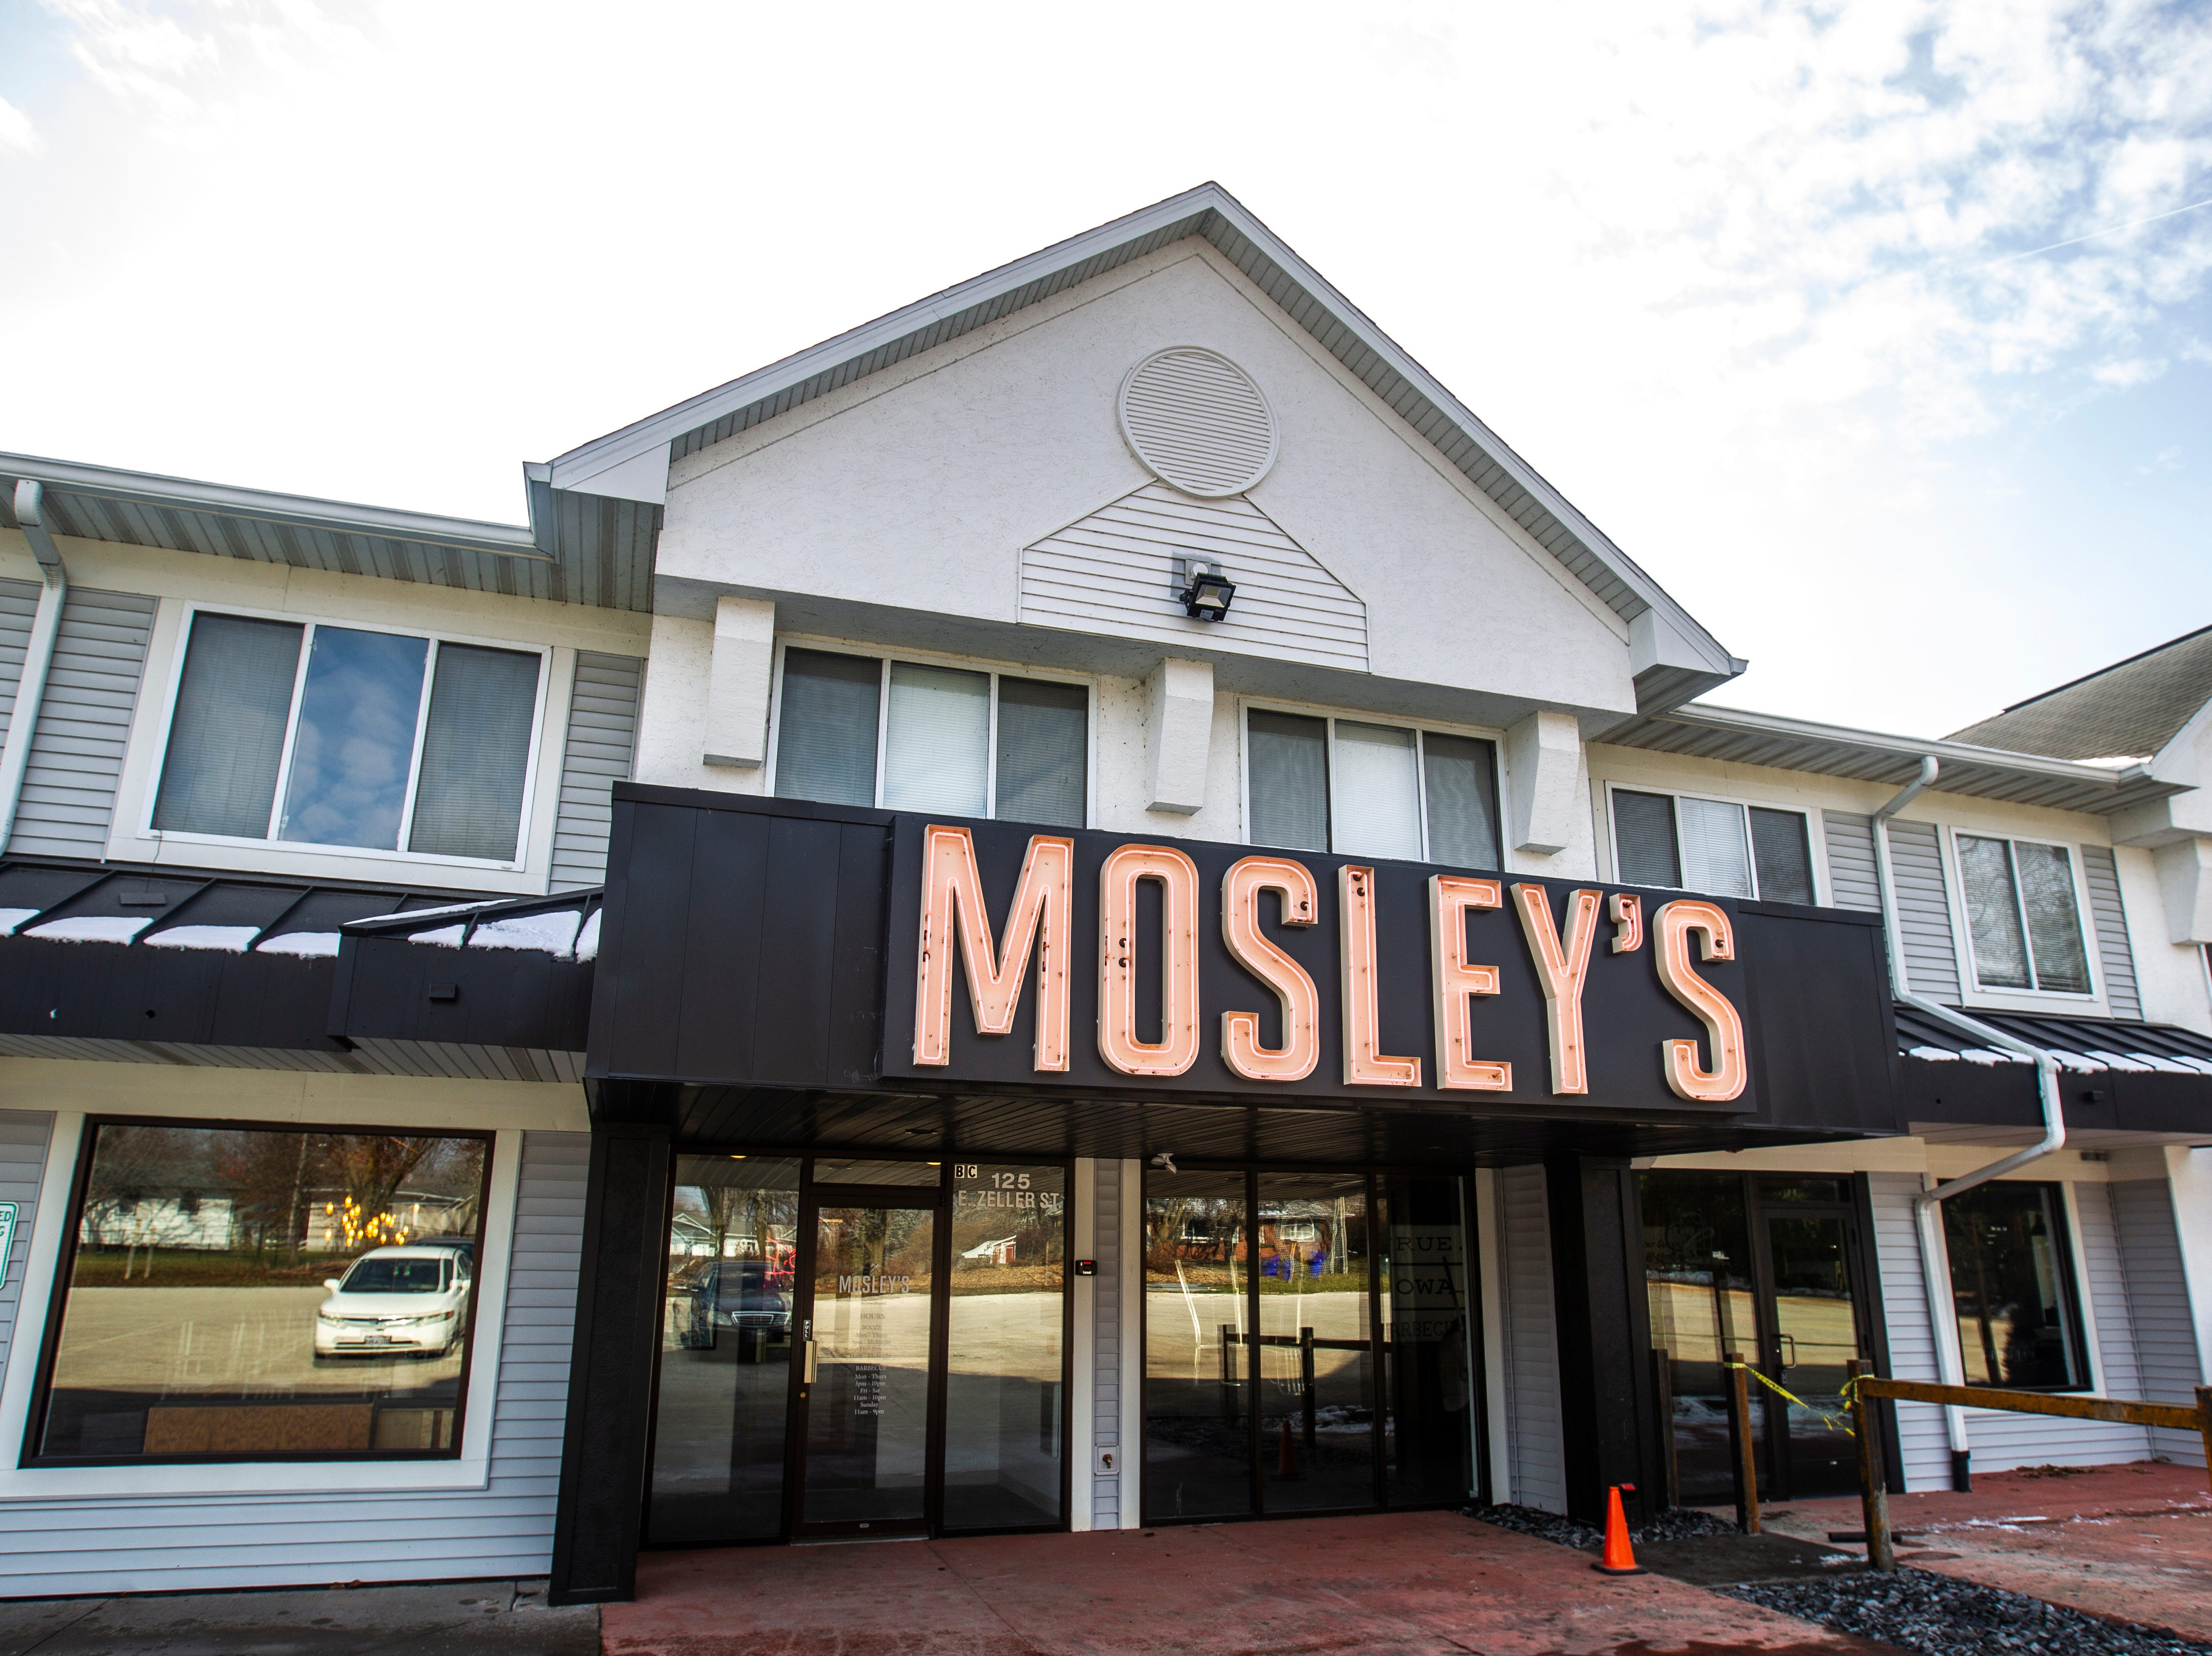 Mosley's Barbecue and Provisions is seen on Wednesday, Nov. 21, 2018, at 125 E Zeller St. in North Liberty.